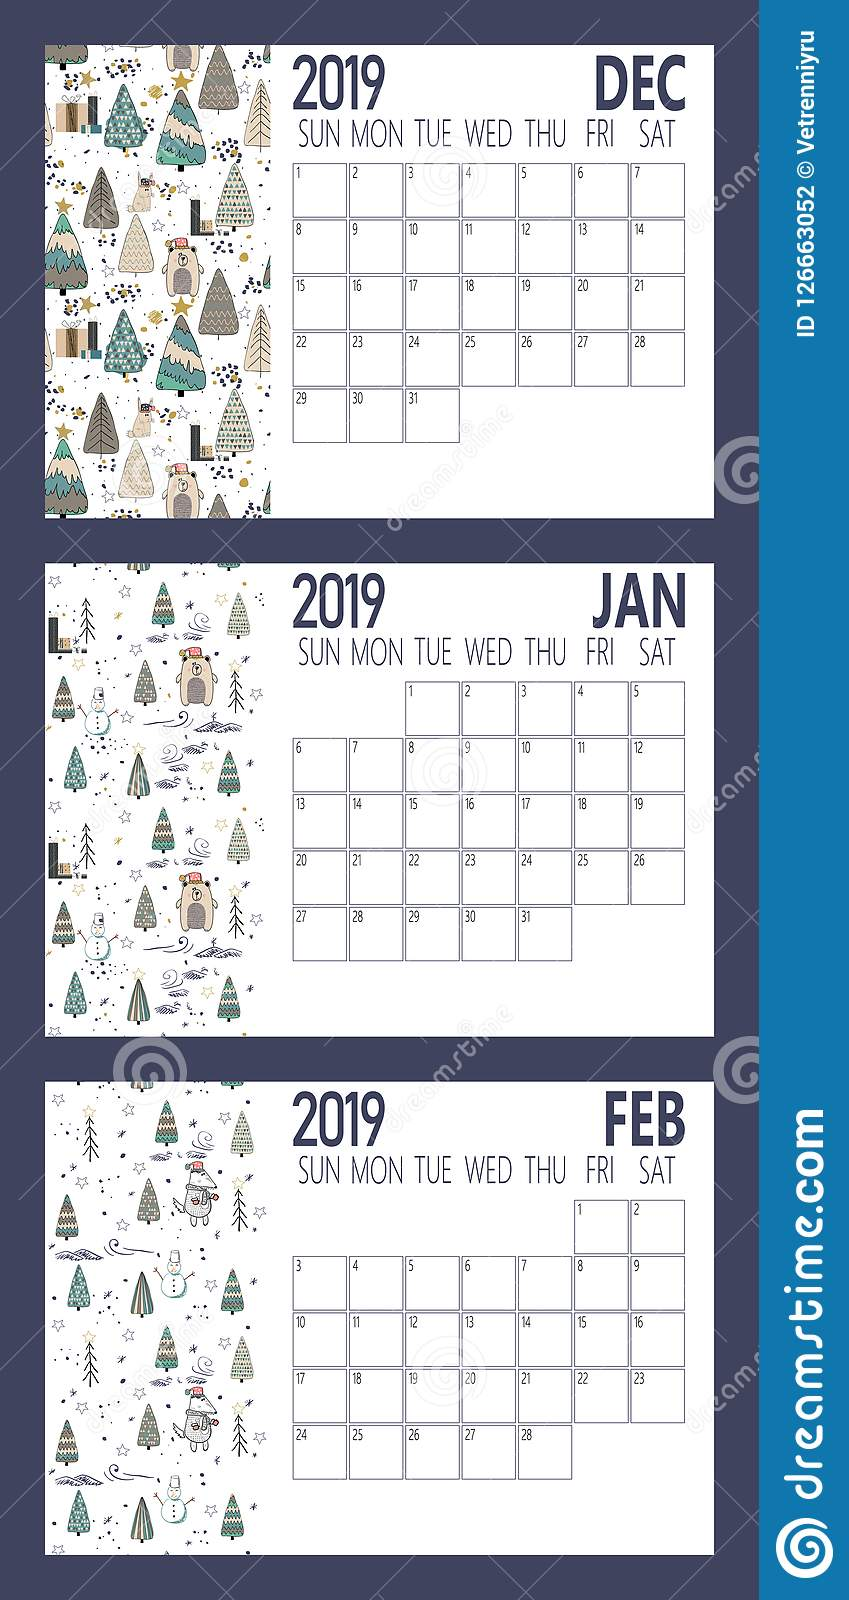 download vector of 2019 new year calendar sheet with forest a4 size stock vector illustration